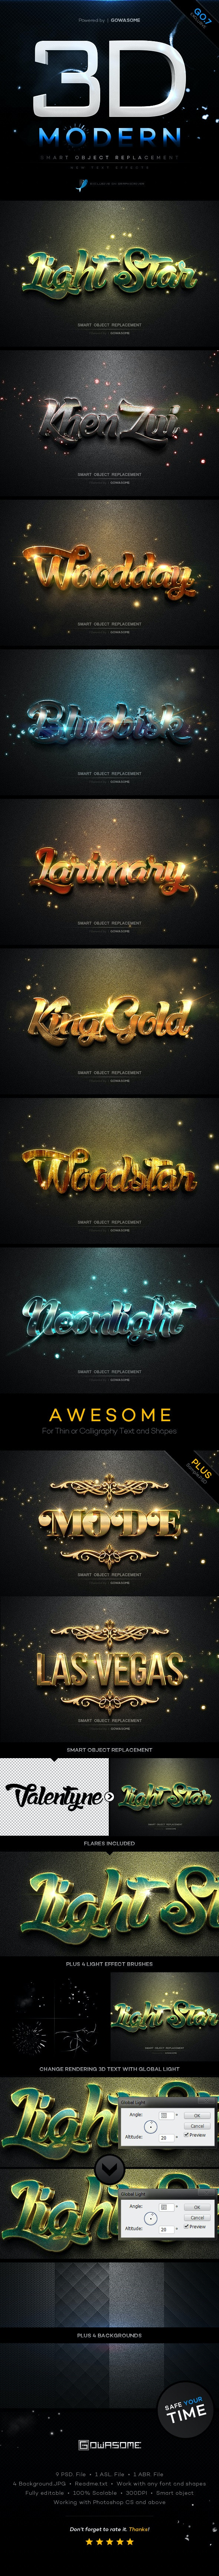 Modern 3D Text Effects GO.7 - Text Effects Styles